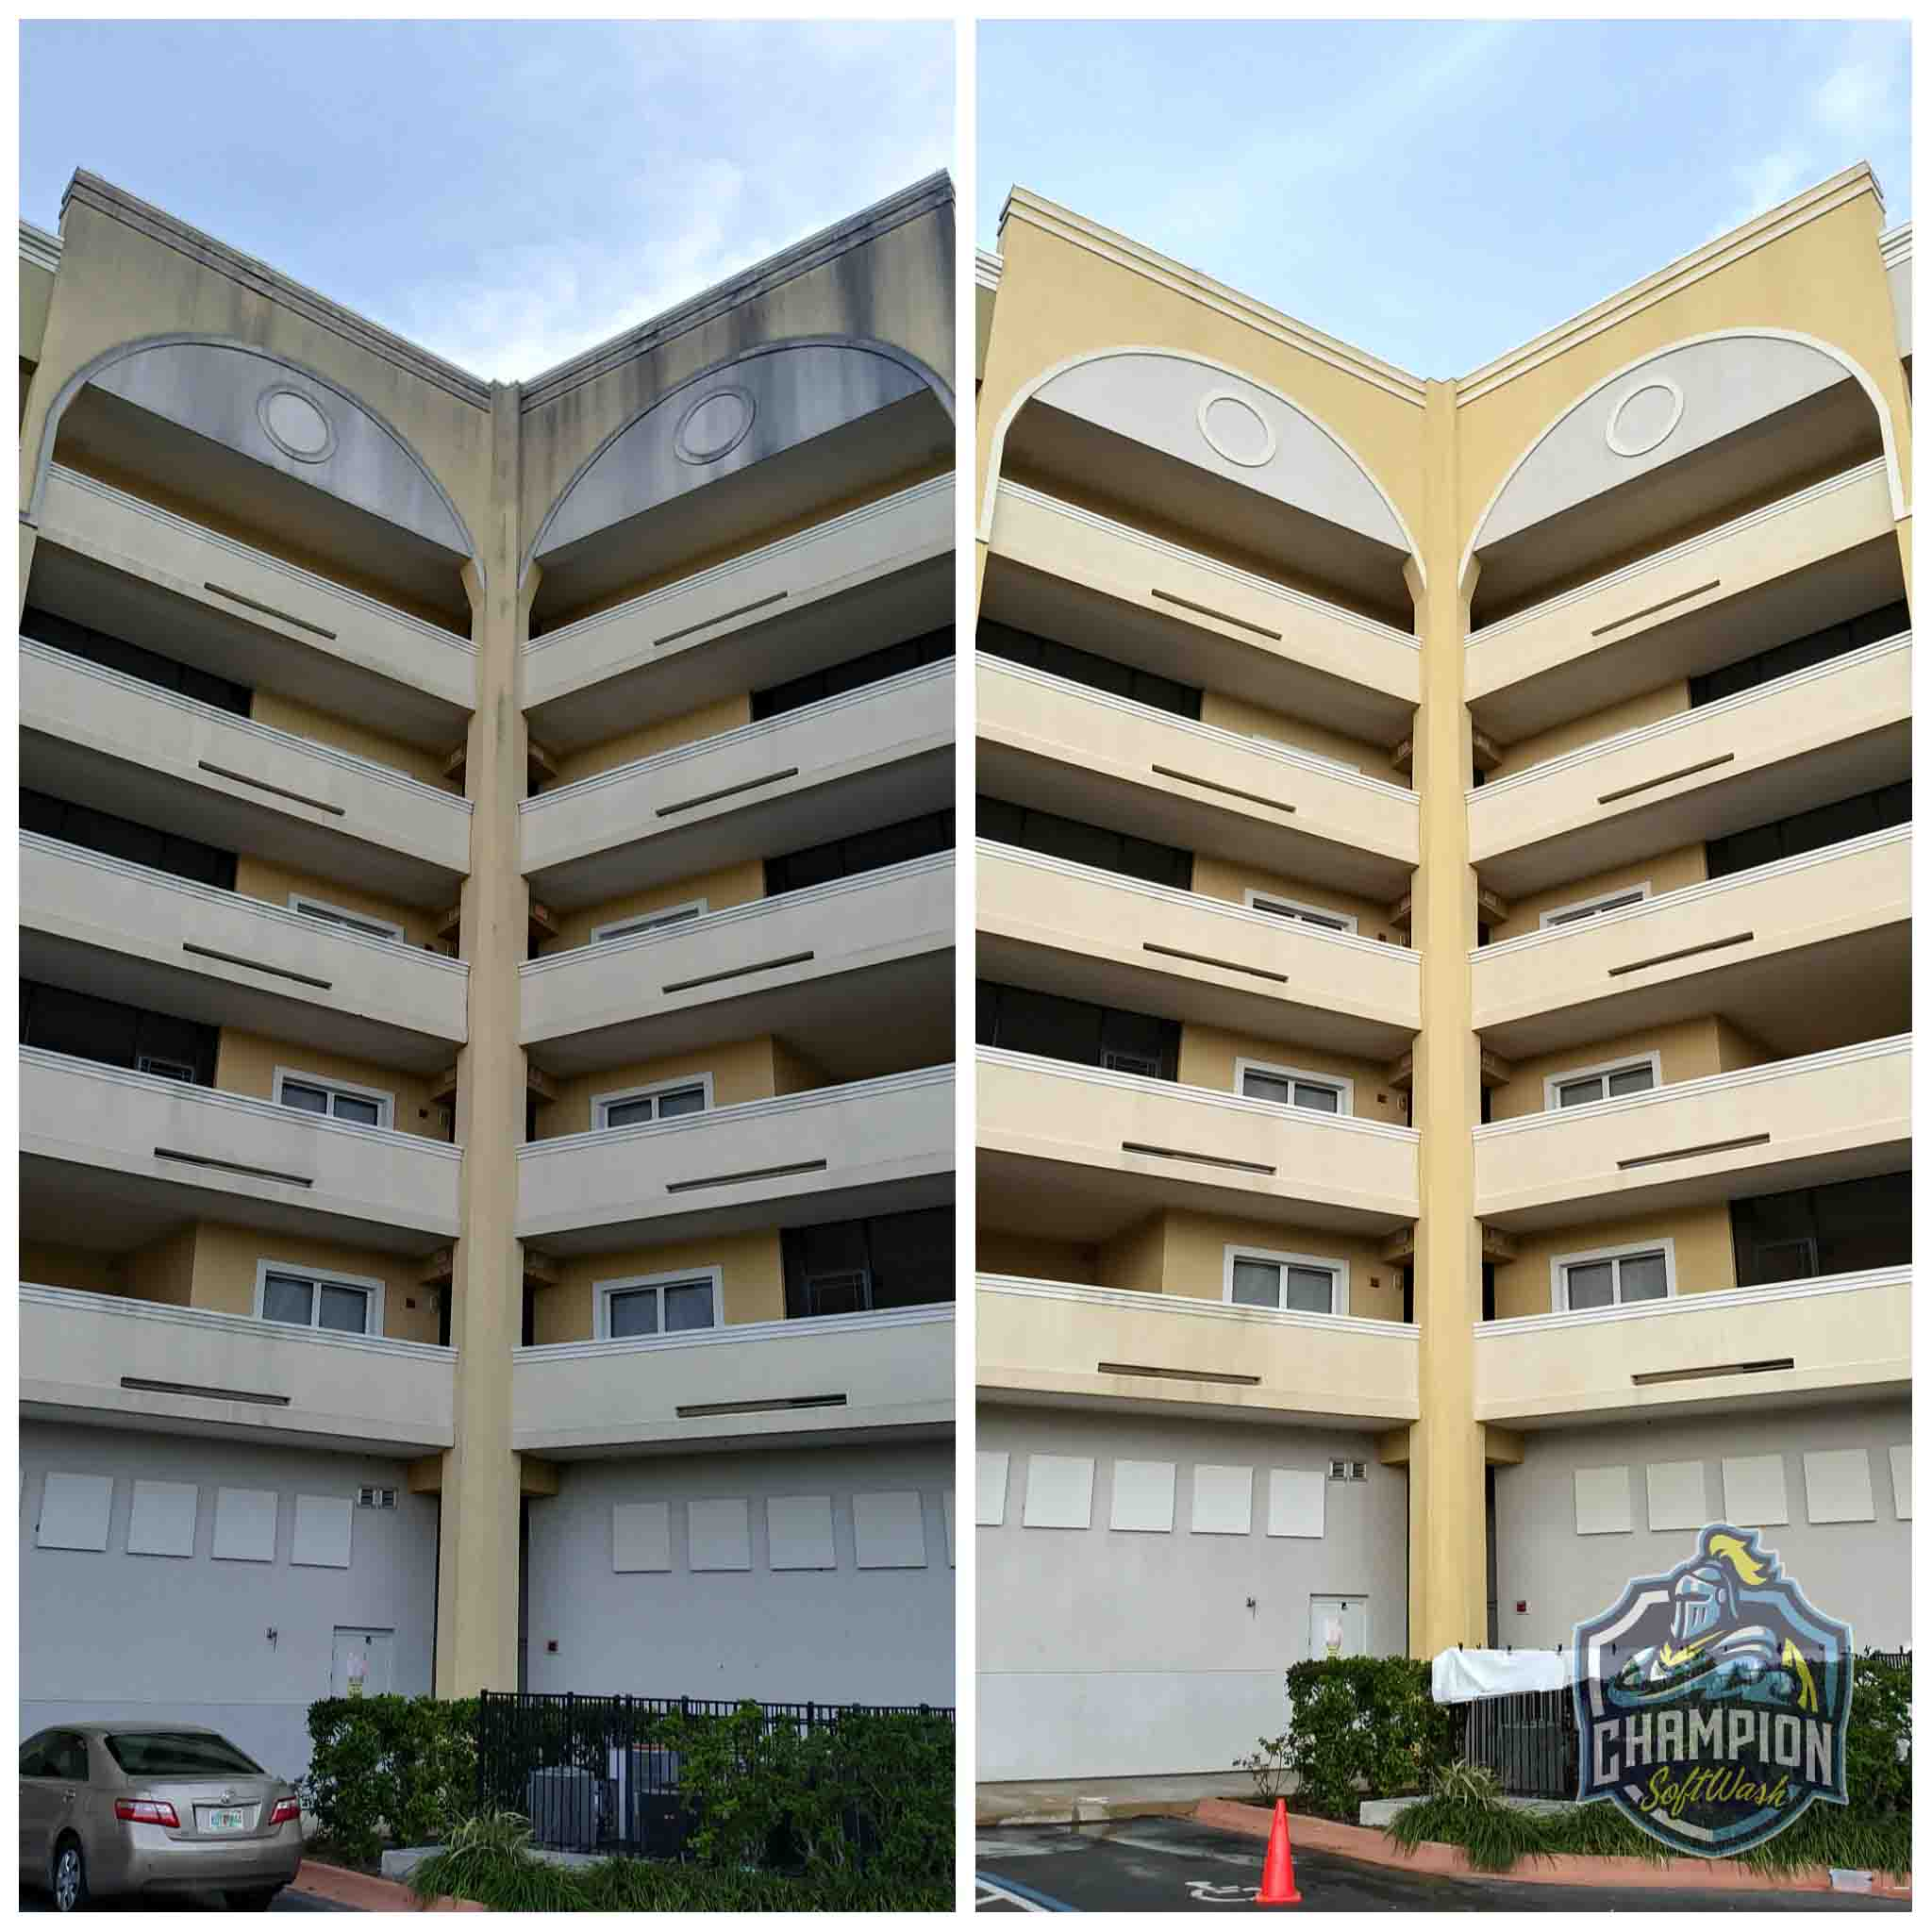 Algae and Mold removal pressure washing services for commercial properties, stucco cleaning, efis and dryvit cleaning